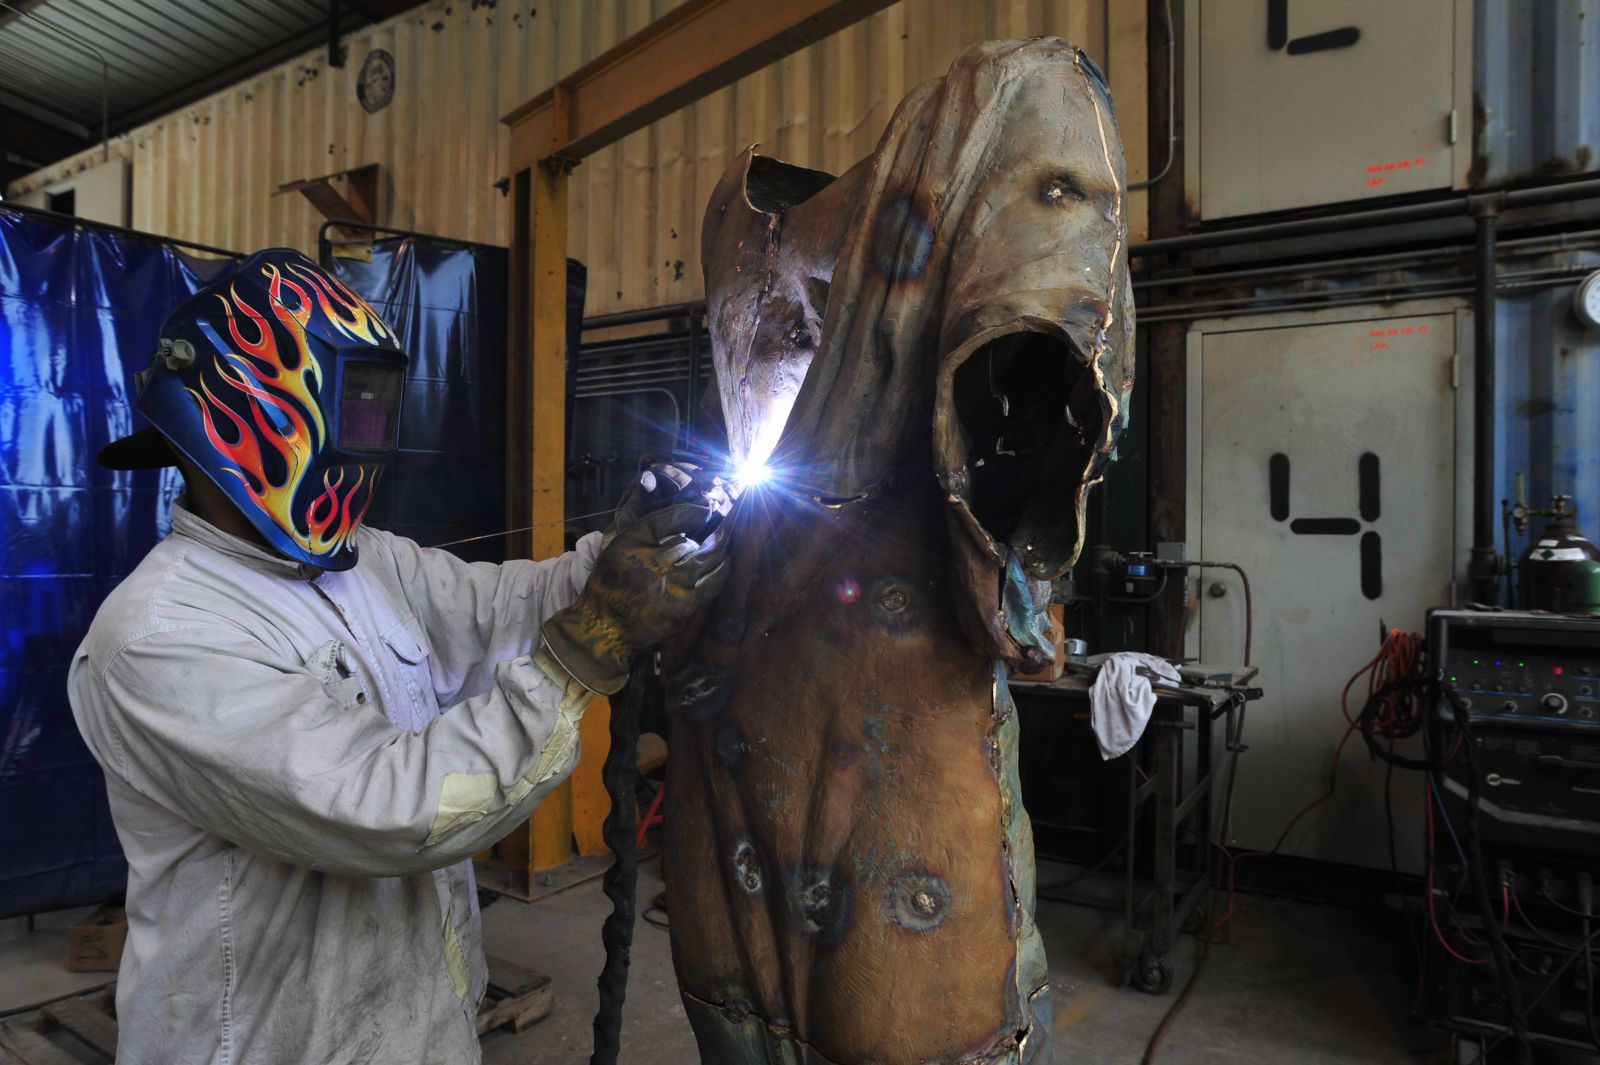 An employee at the Deep in the Heart Art Foundry works on a new piece. (Photo by Terry Hagerty Photography)